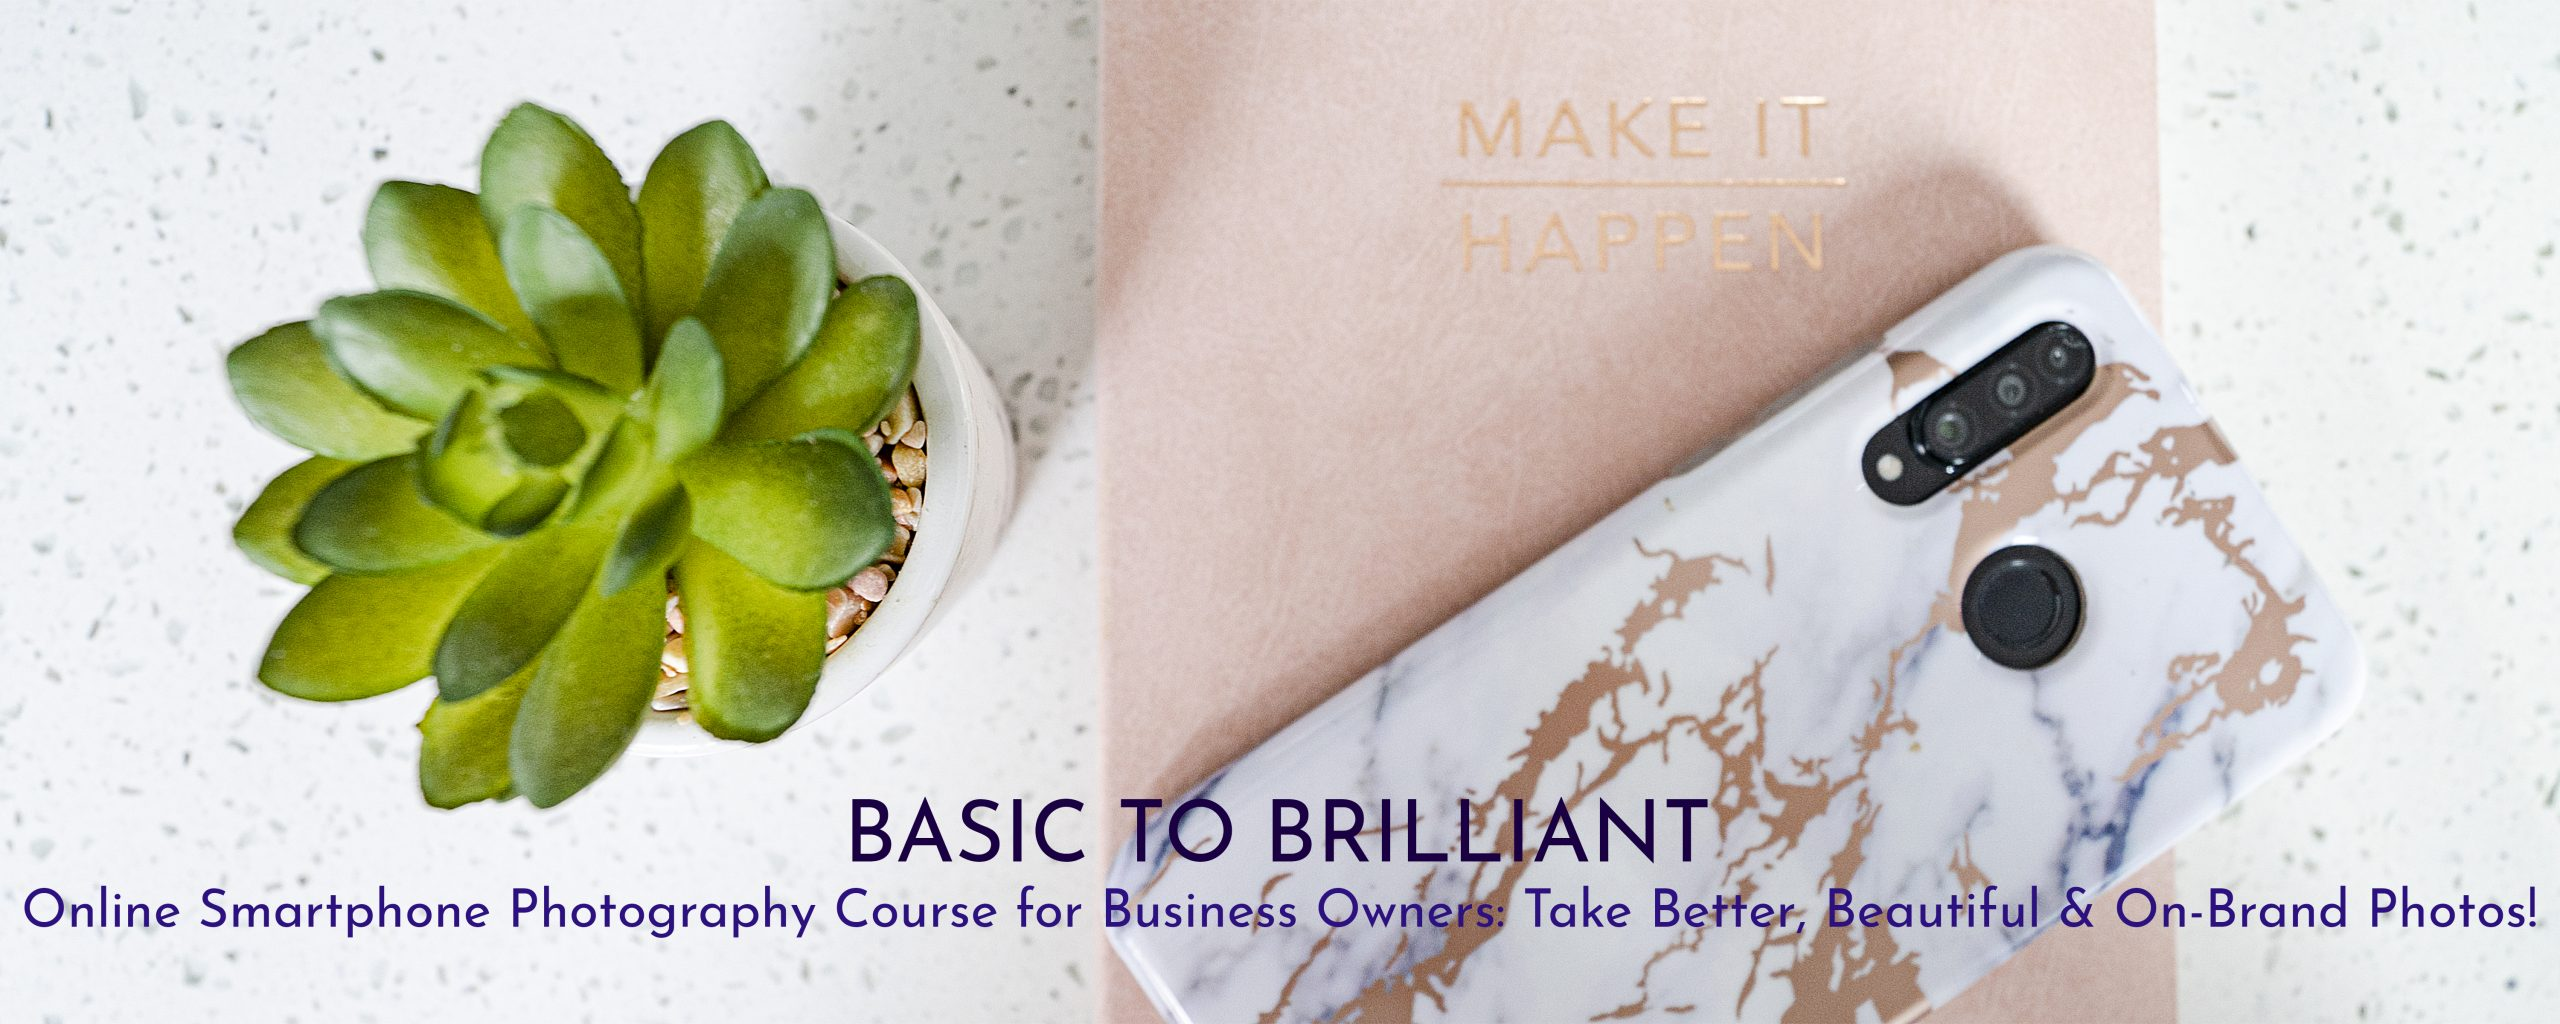 Title image for Basic to Brilliant photography course by Picture Your Brand/Jane Mucklow